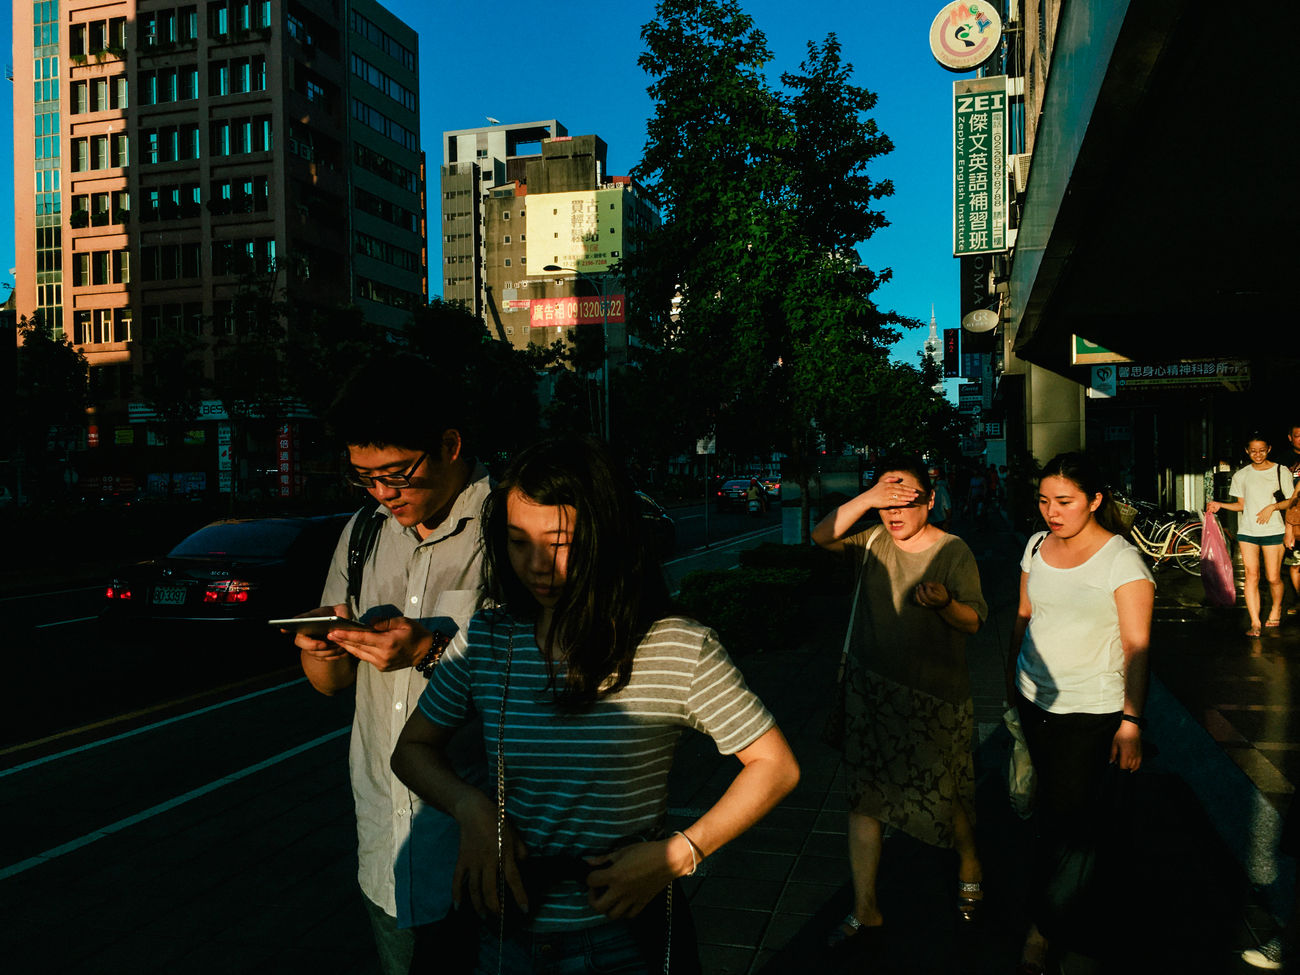 Da-an District, Taipei, 2016 Candid Everybodystreet IPhone IPhoneography Librarymook Mobilephotography Shadows Streetphotography Taipei Taiwan